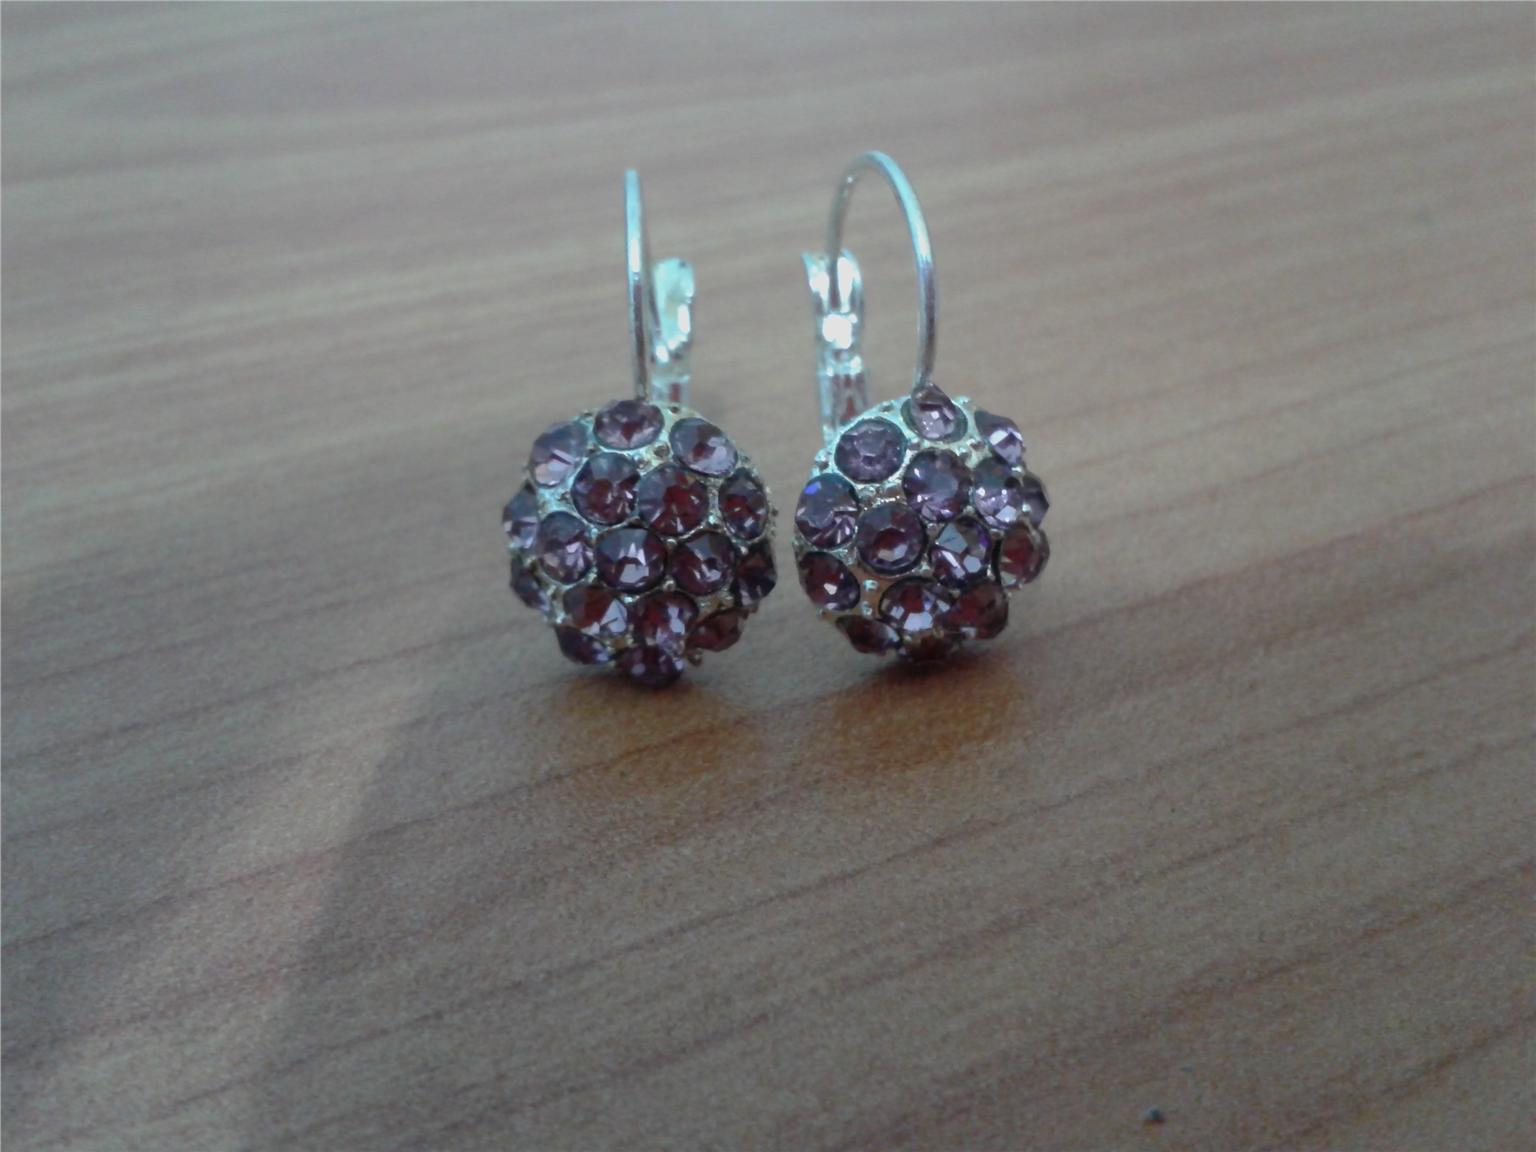 EARRINGS - RHINESTONE EARRINGS LIGHT PURPLE